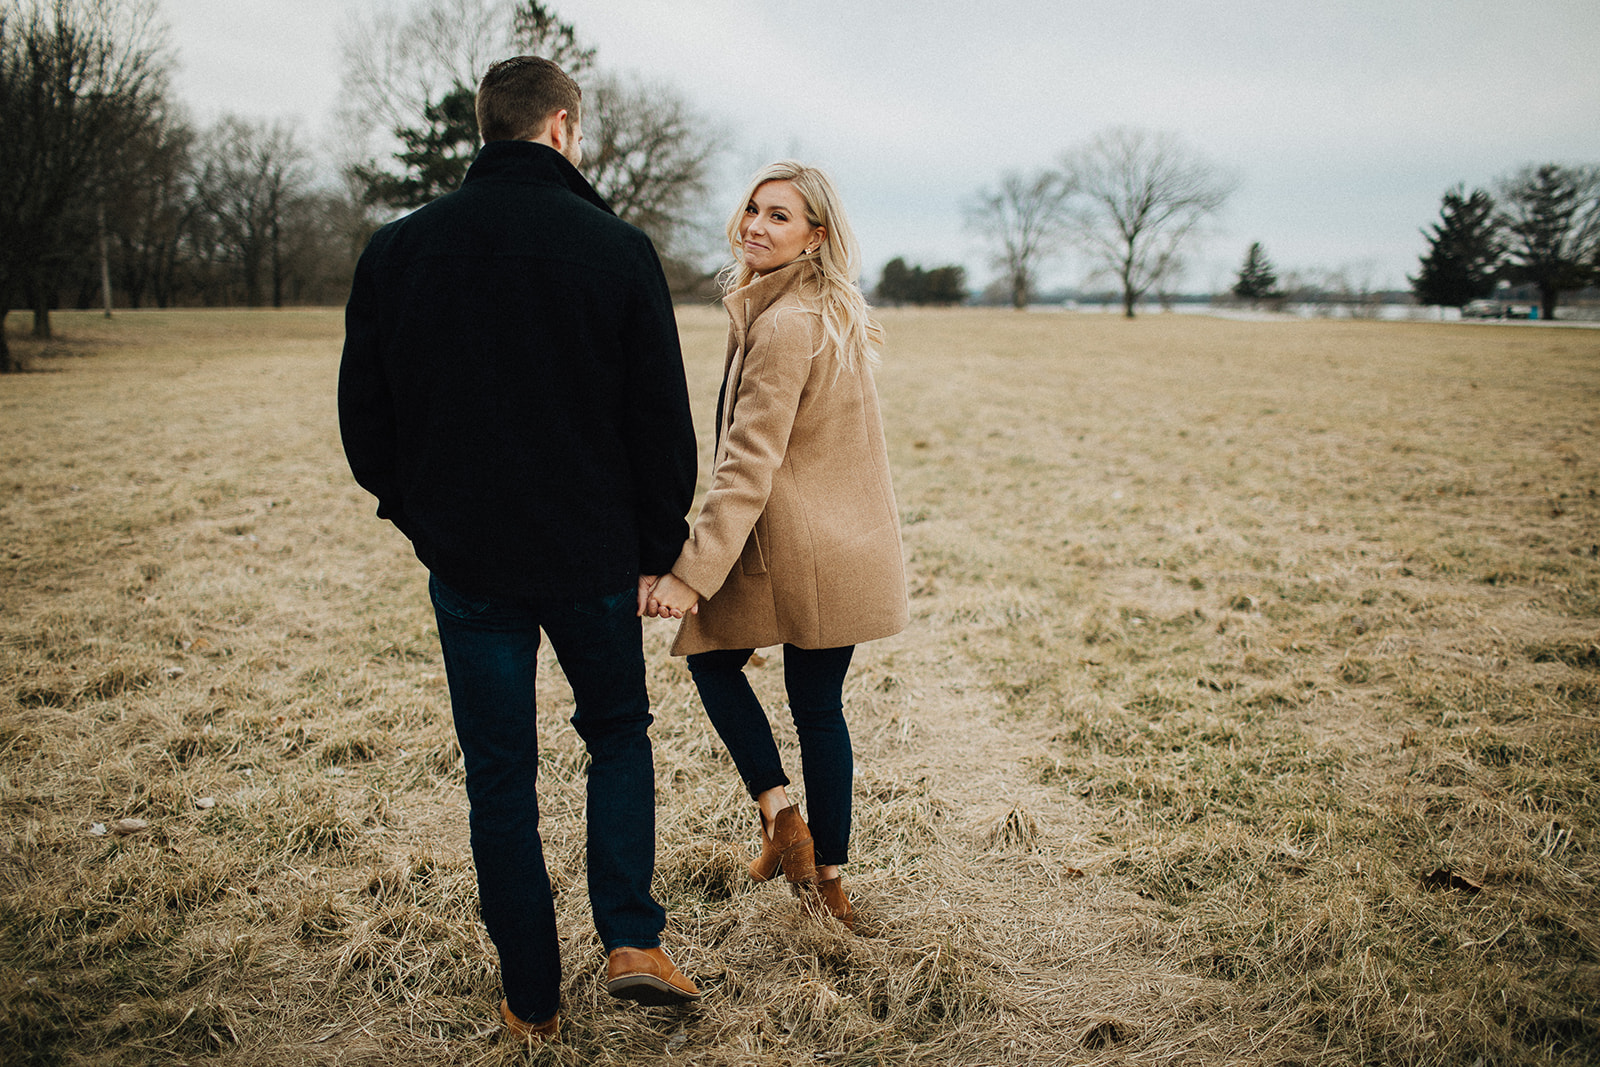 Eastwood Metropark Engagement Session in Dayton Ohio